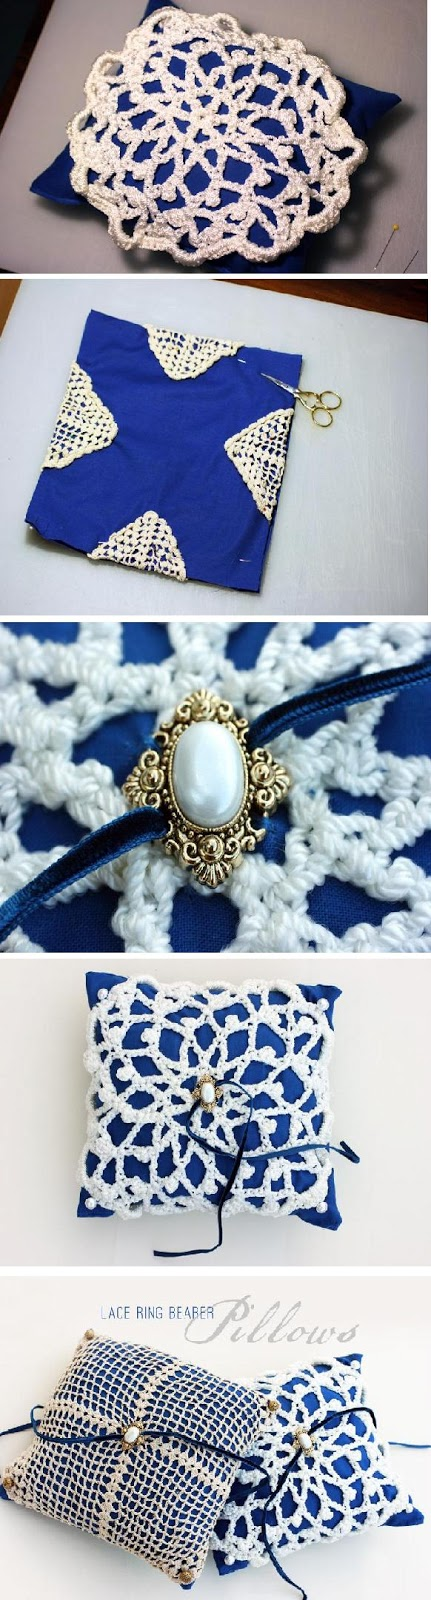 Diy ring bearer pillow diy craft tutorials for Diy ring bearer